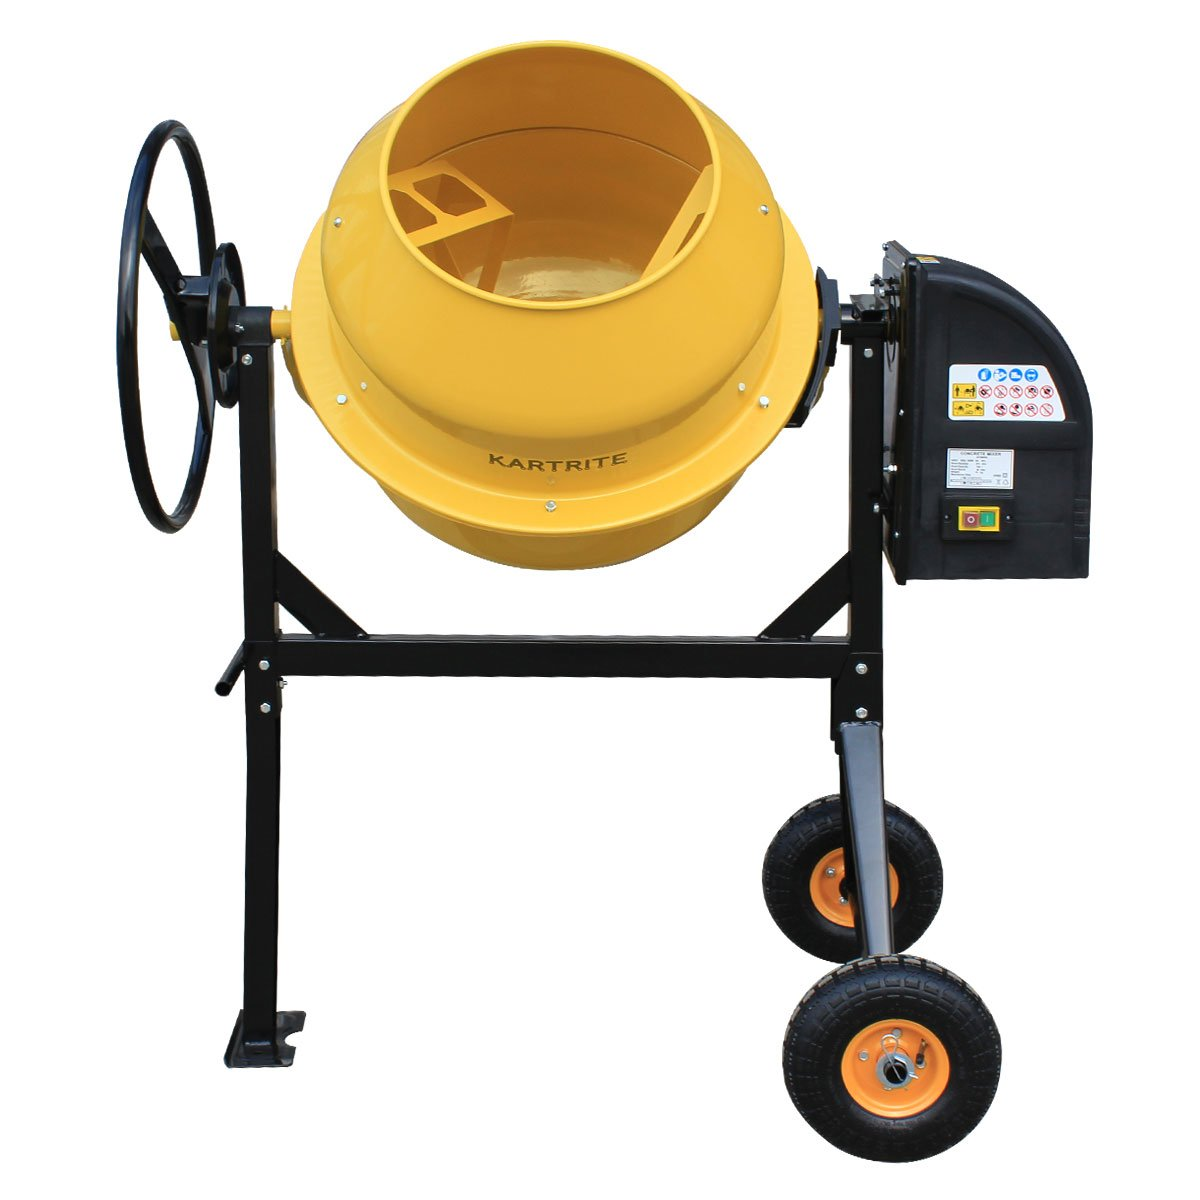 Kartrite 140L Cement Concrete Mixer Sand Gravel Portable 650W